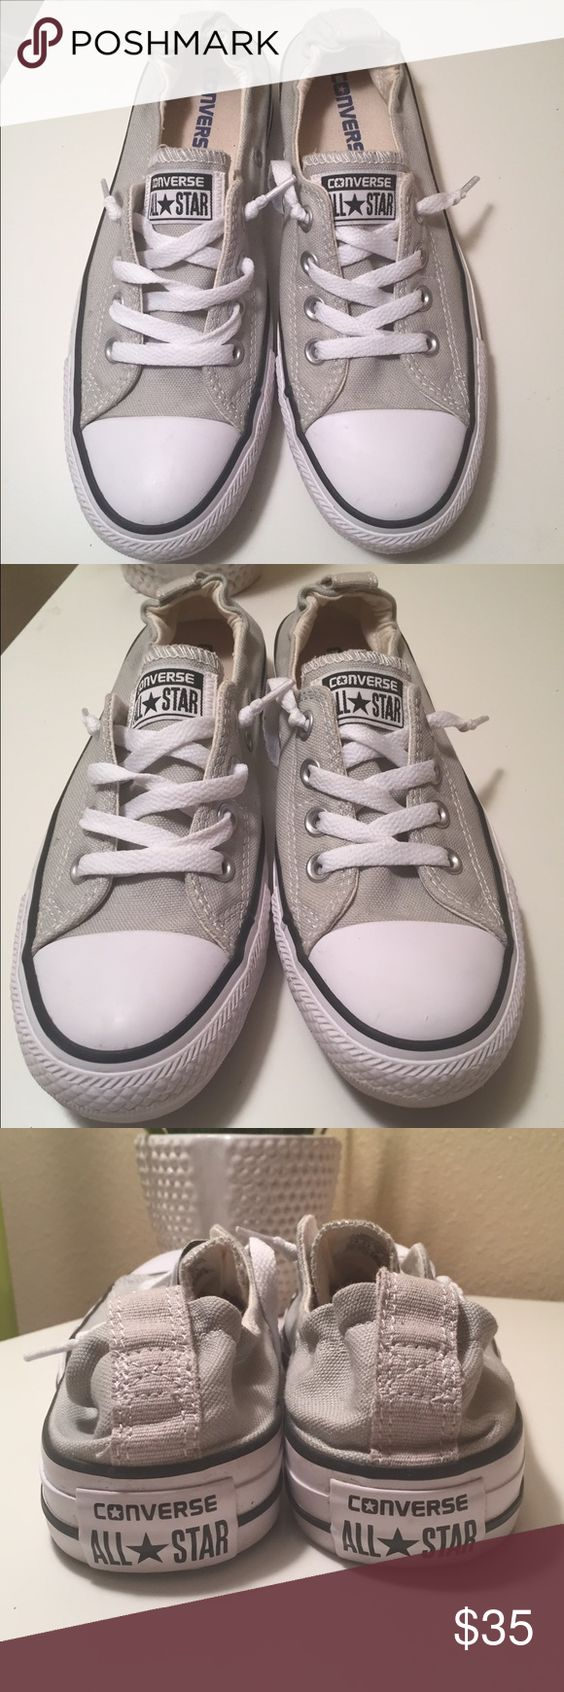 All star chuck Taylor shoreline converse women 7.5 All star chuck Taylor converse shoreline women's size 7.5. worn twice great pre owned condition.If you have any questions feel free to ask 😊❤️ Converse Shoes Sneakers